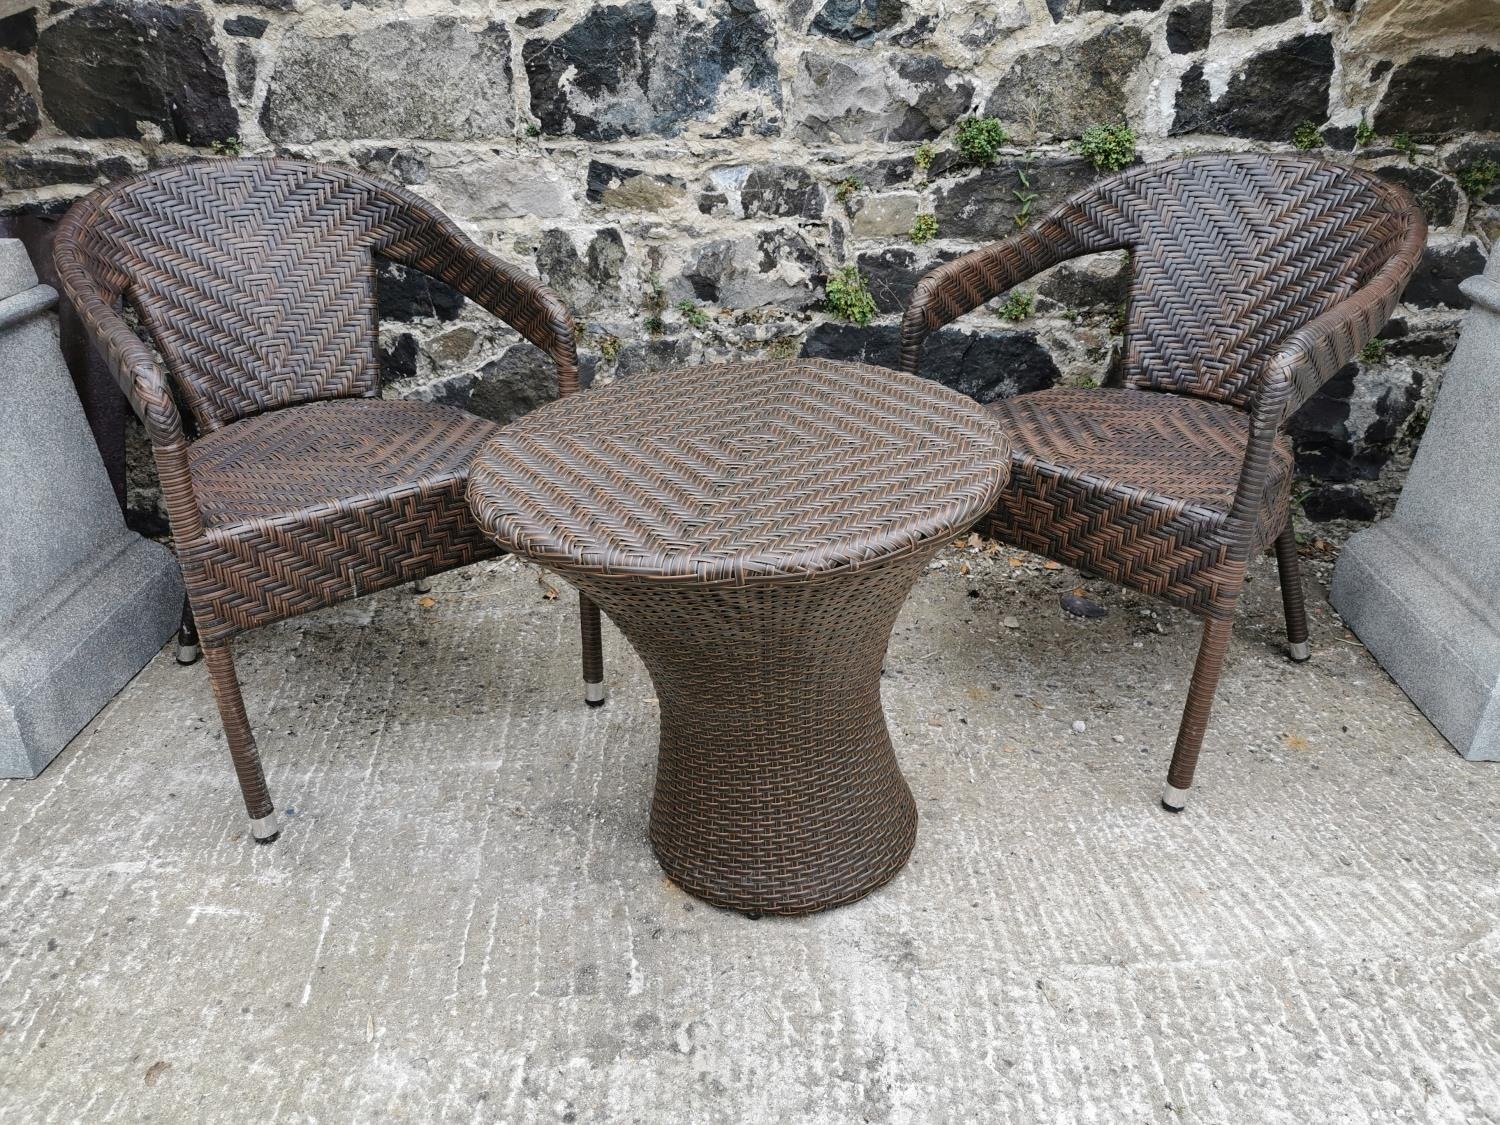 Rattan garden table and two chairs.